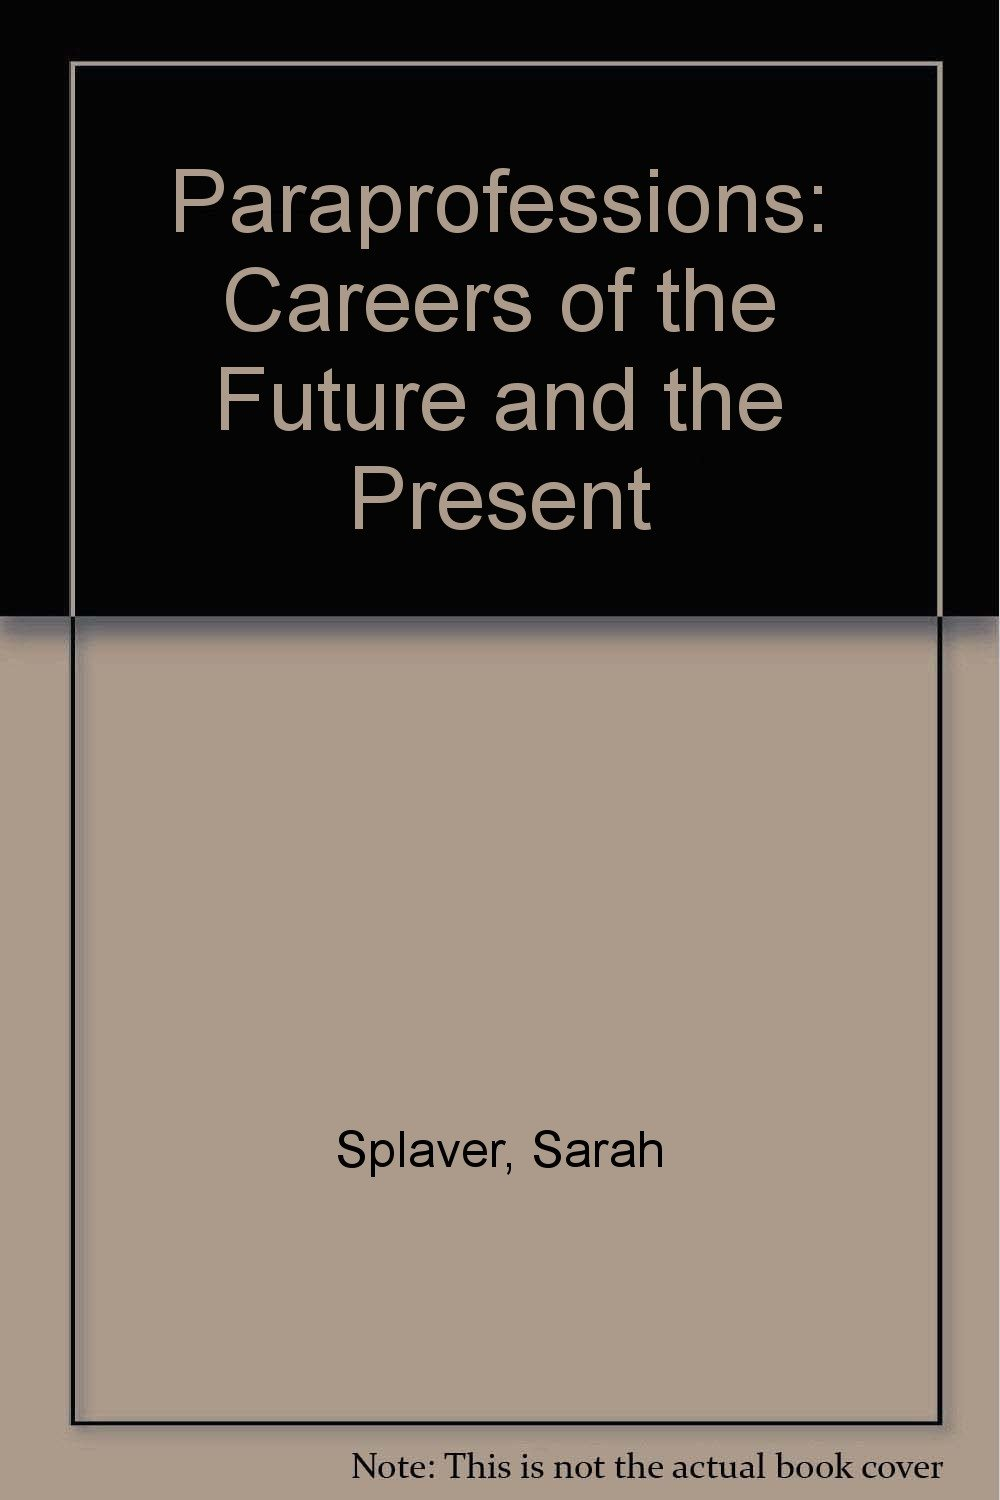 Paraprofessions: Careers of the Future and the Present